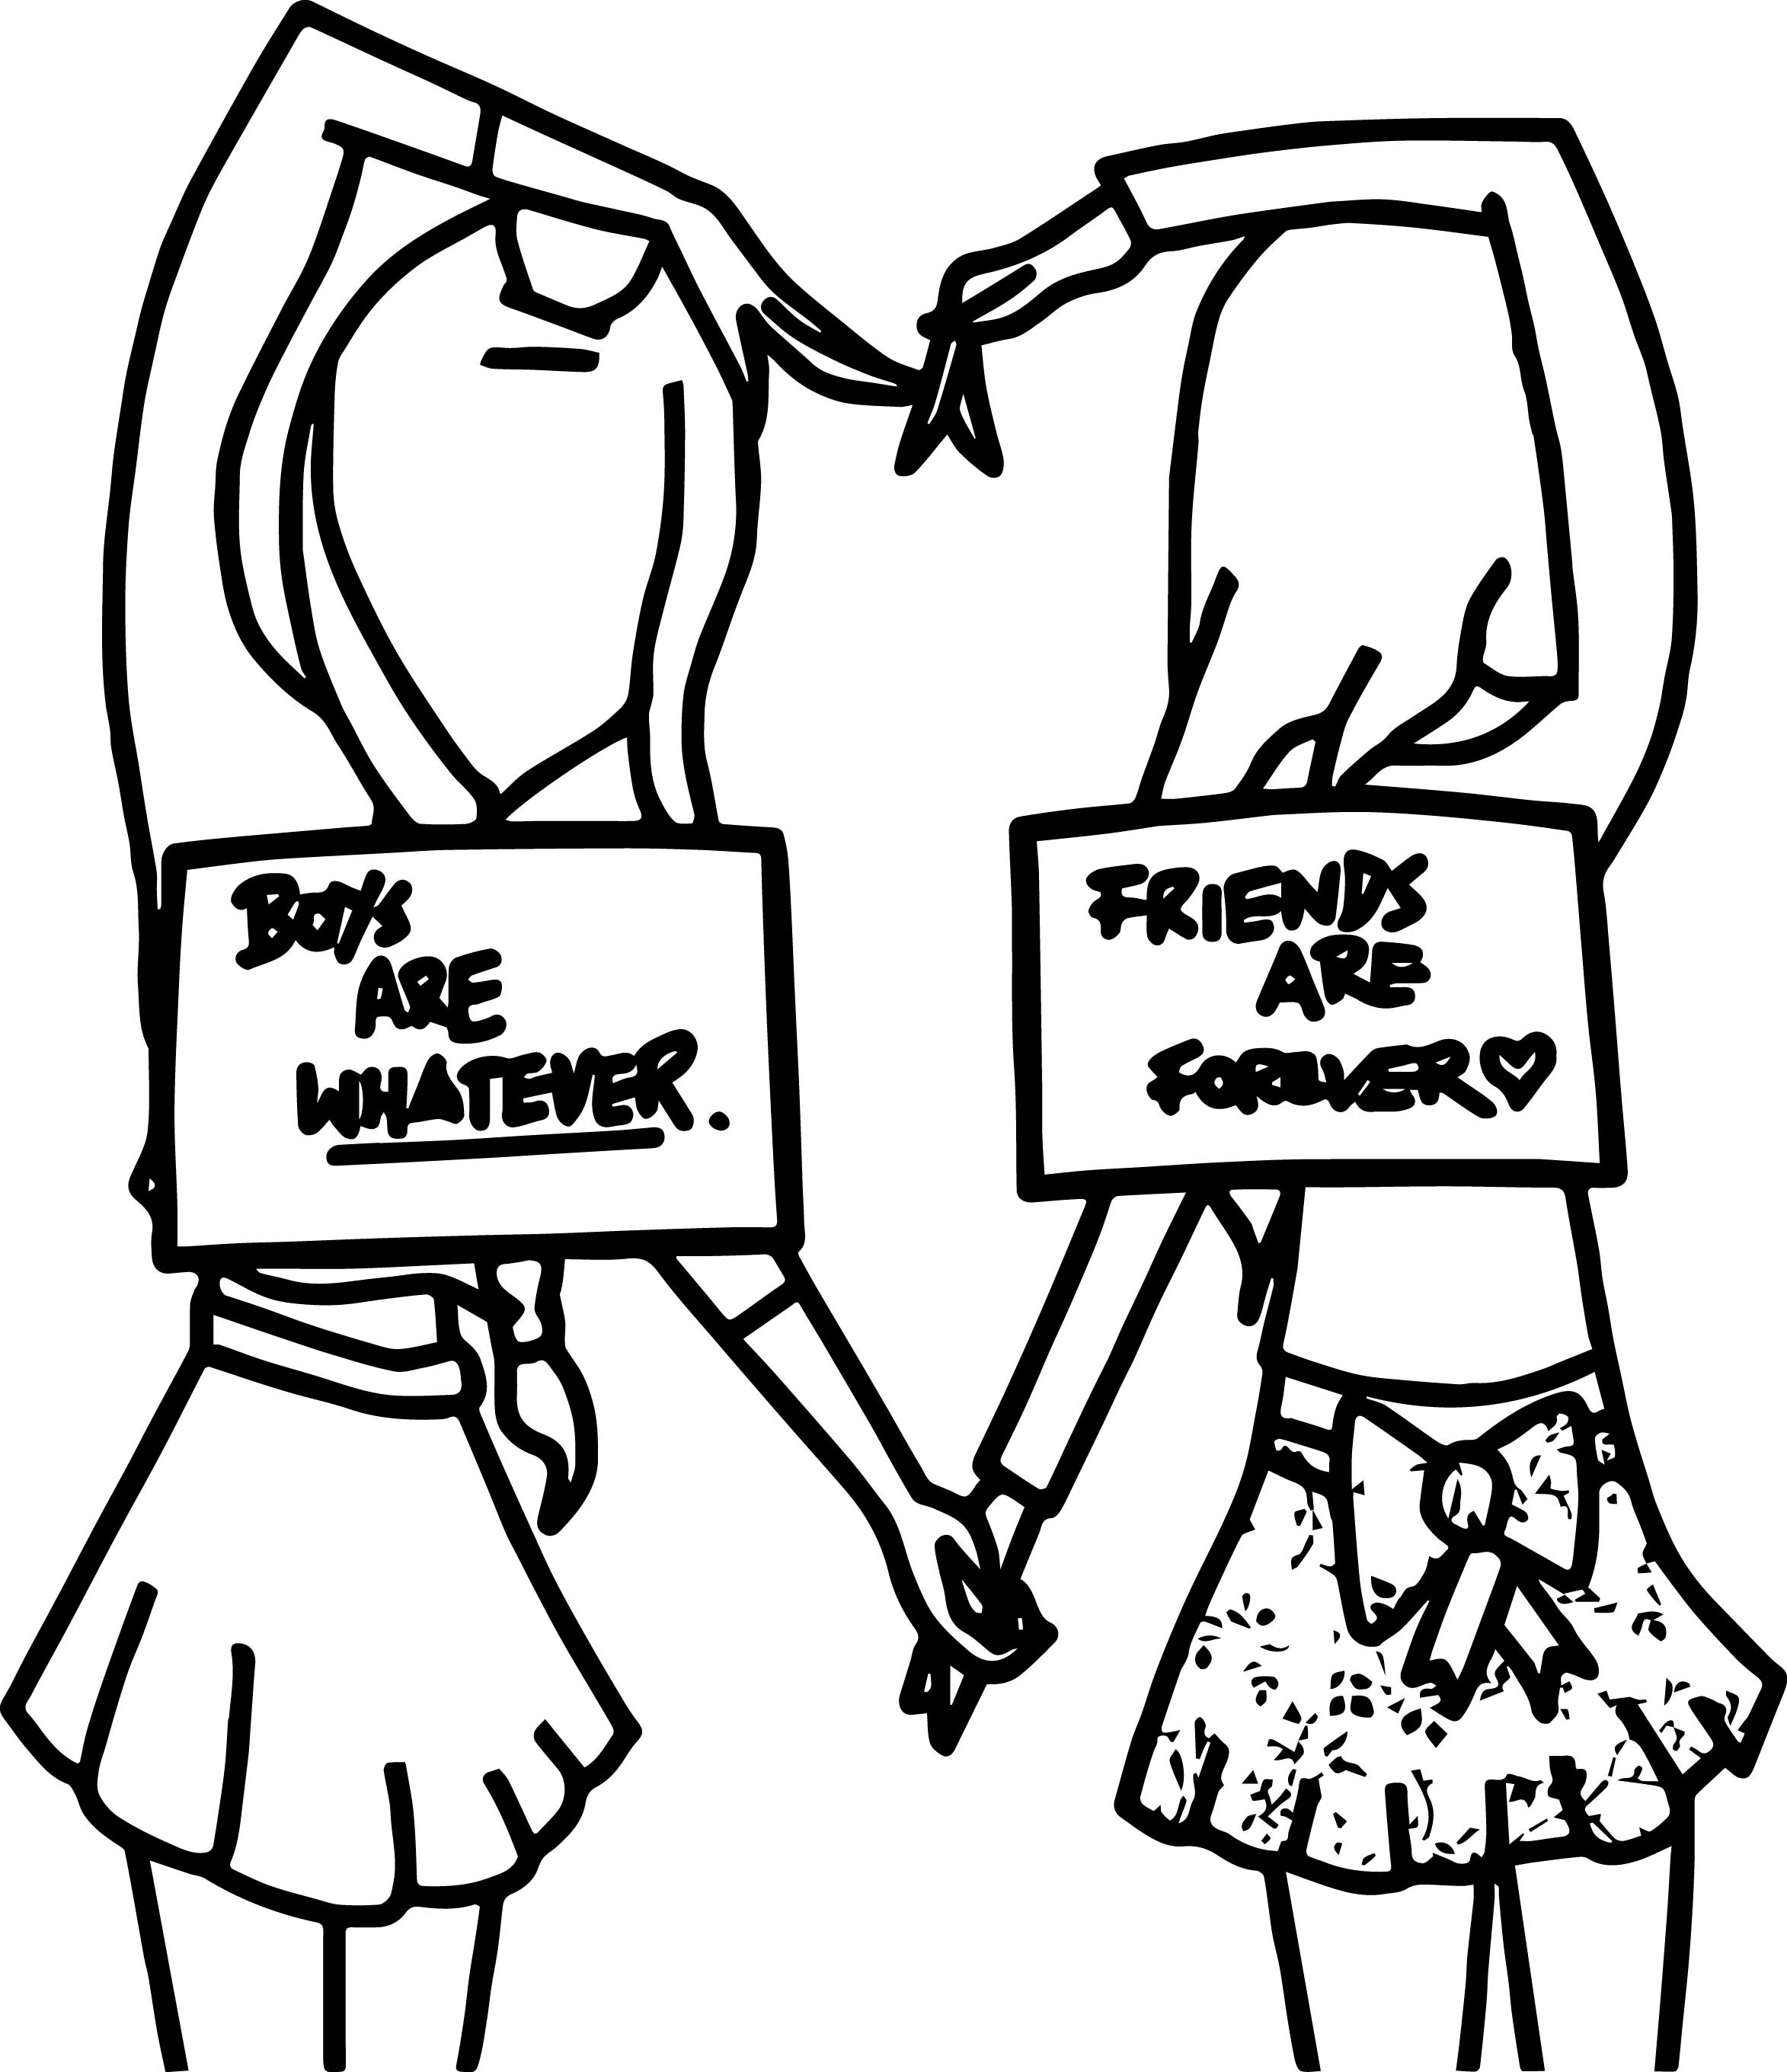 coloring pages for tweens tween coloring pages coloring home pages coloring for tweens